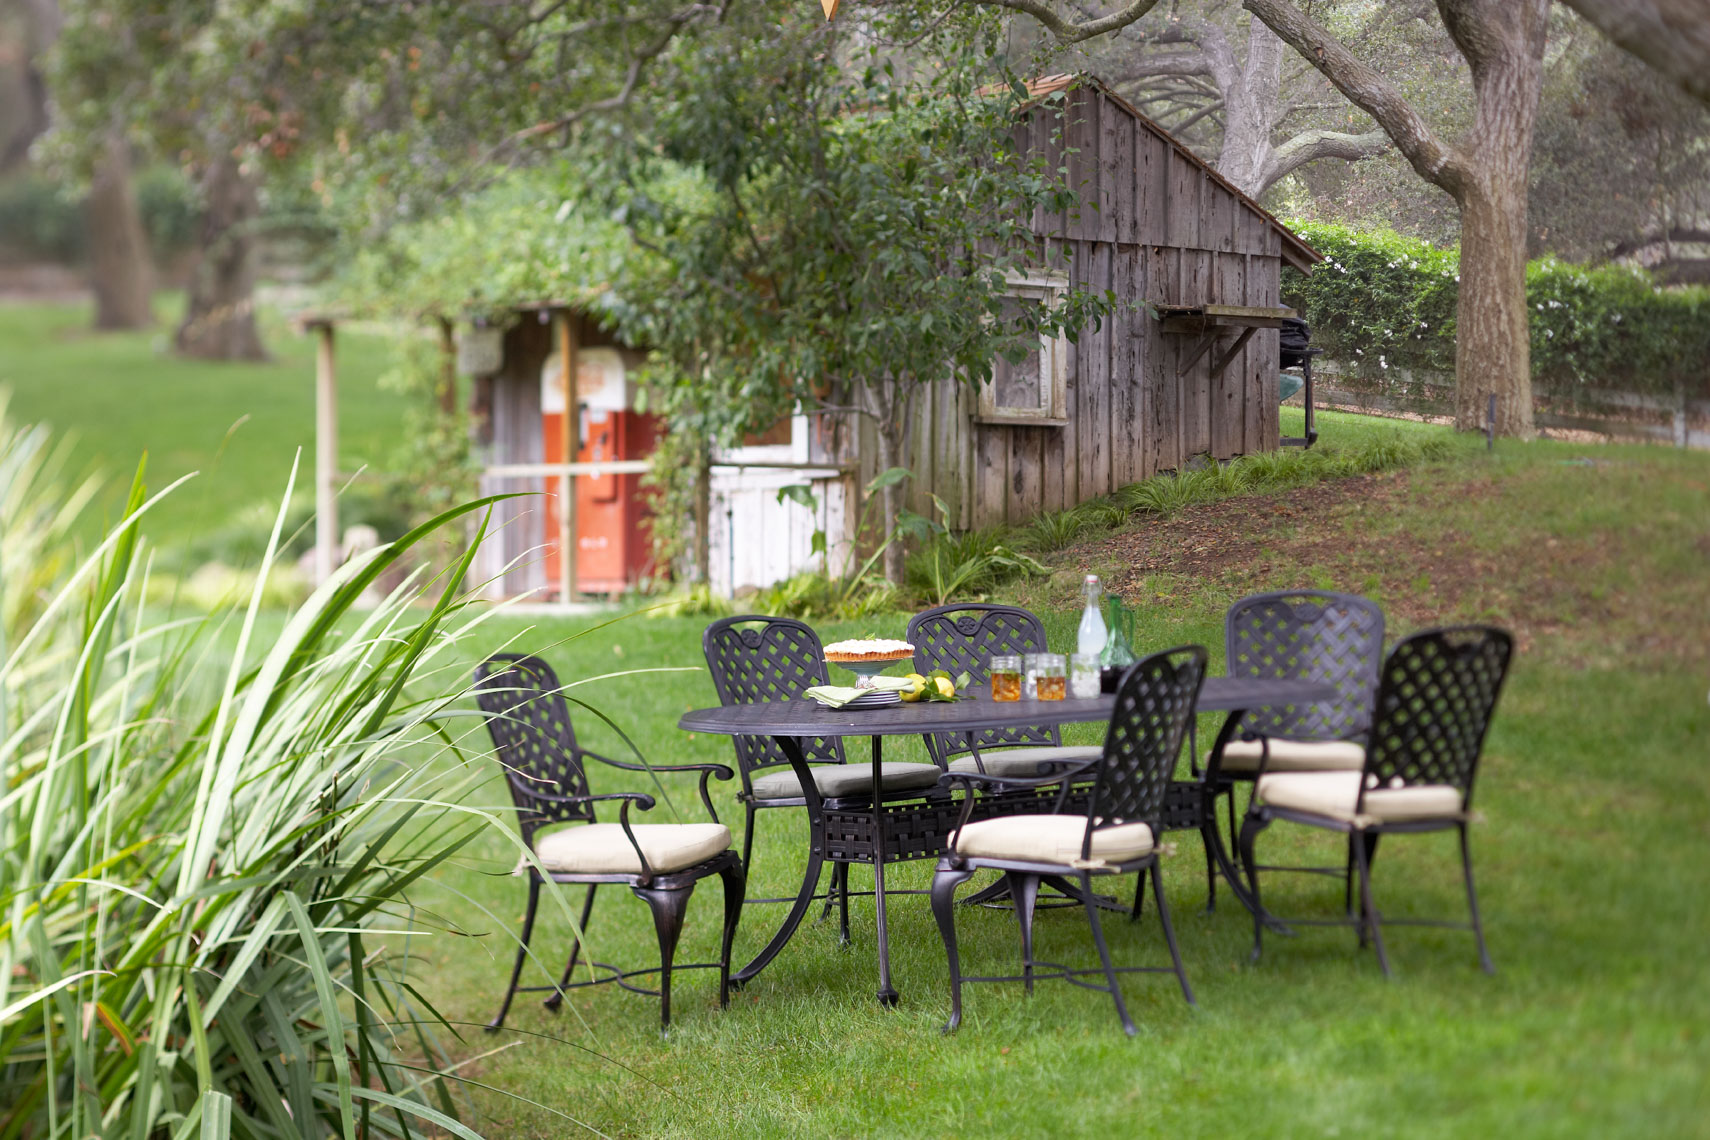 Black metal dinning set on green lawn with old shed